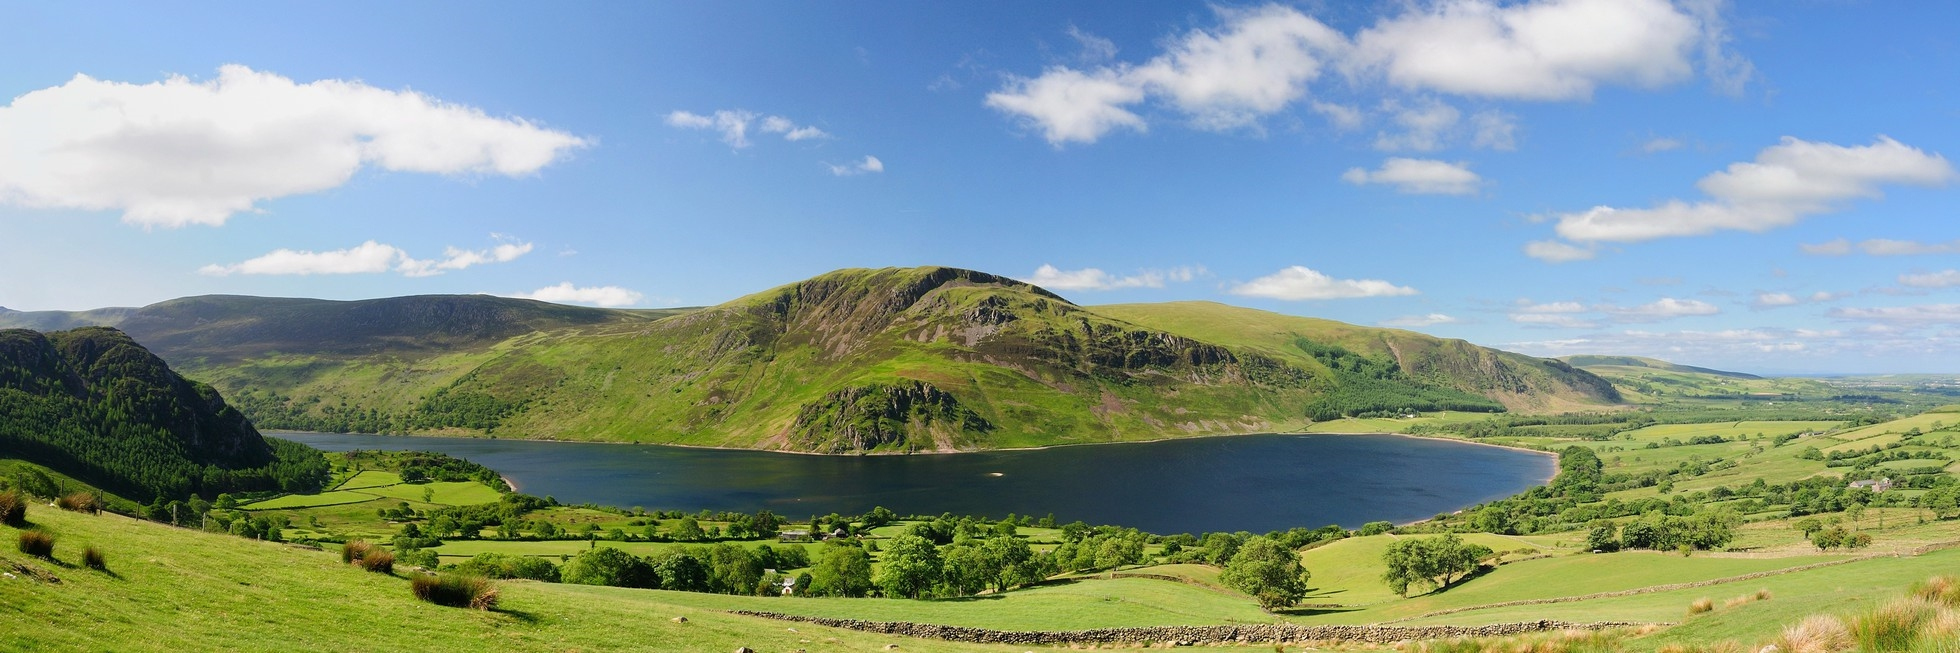 Lakes & Trains of Cumbria